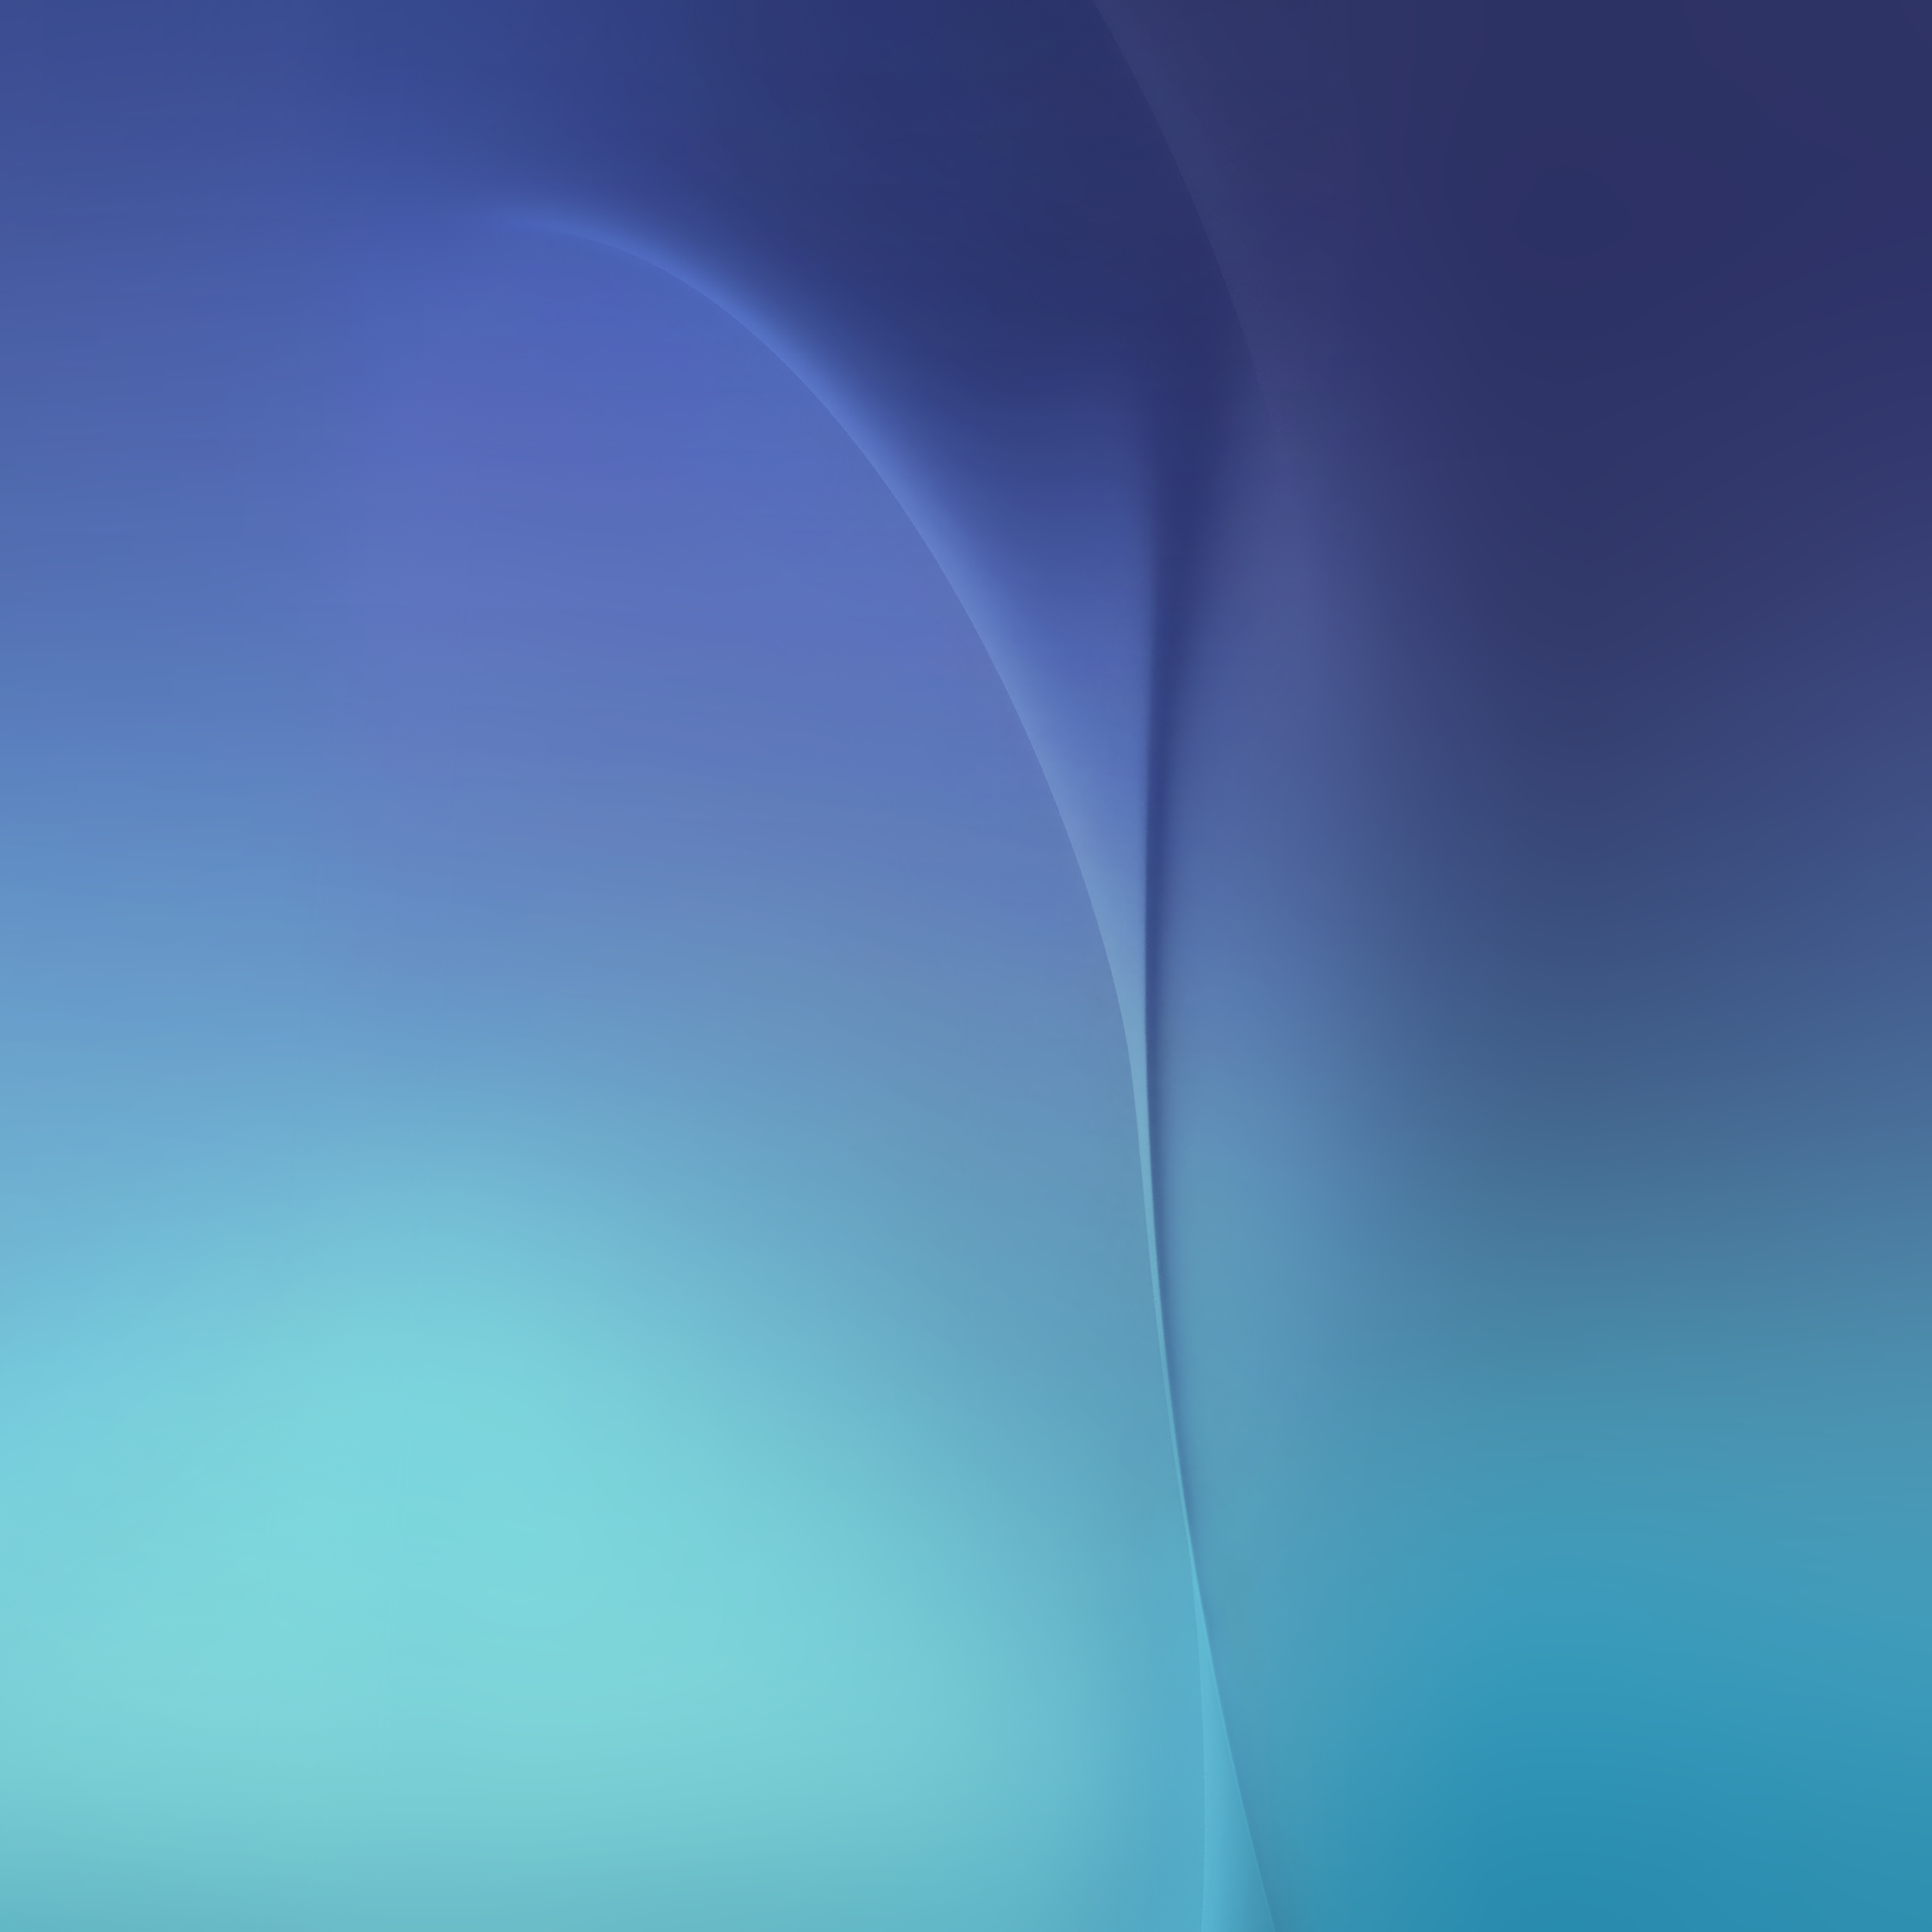 Galaxy S6 Stock Wallpapers 02 2240 X 768x768